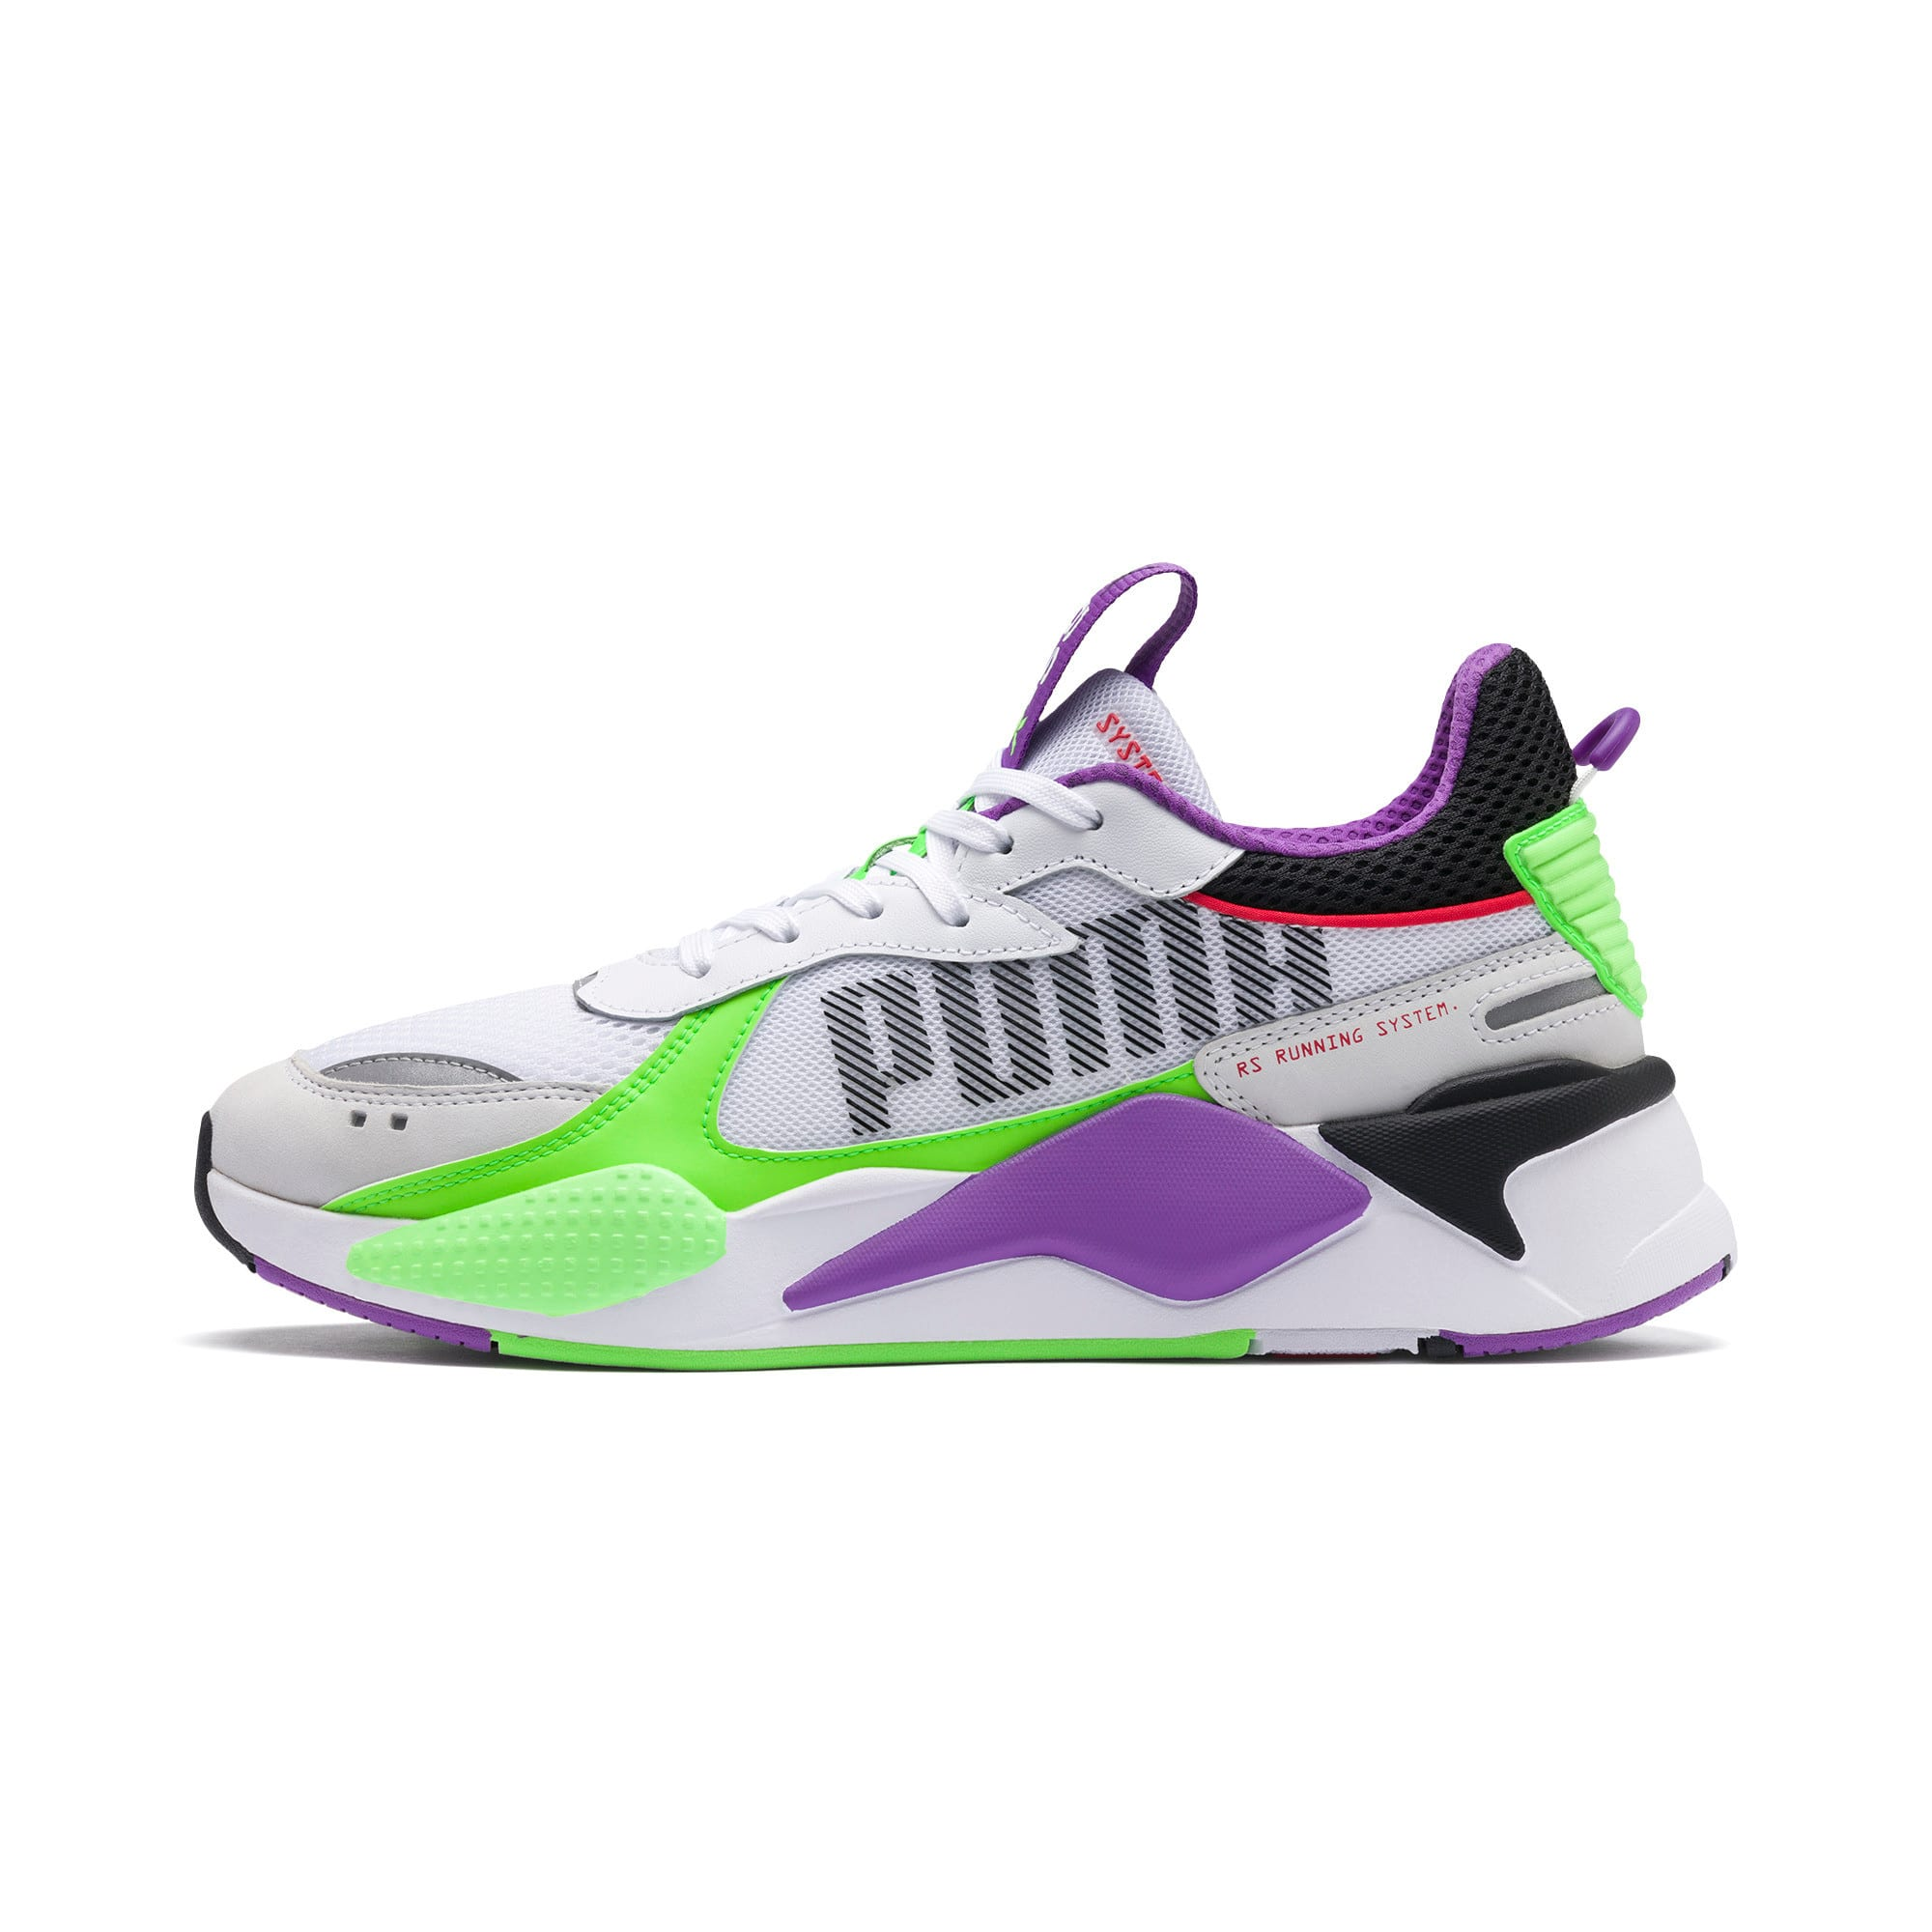 Thumbnail 1 of RS-X Bold Trainers, PWhite-Gr Gecko-Royal Lilac, medium